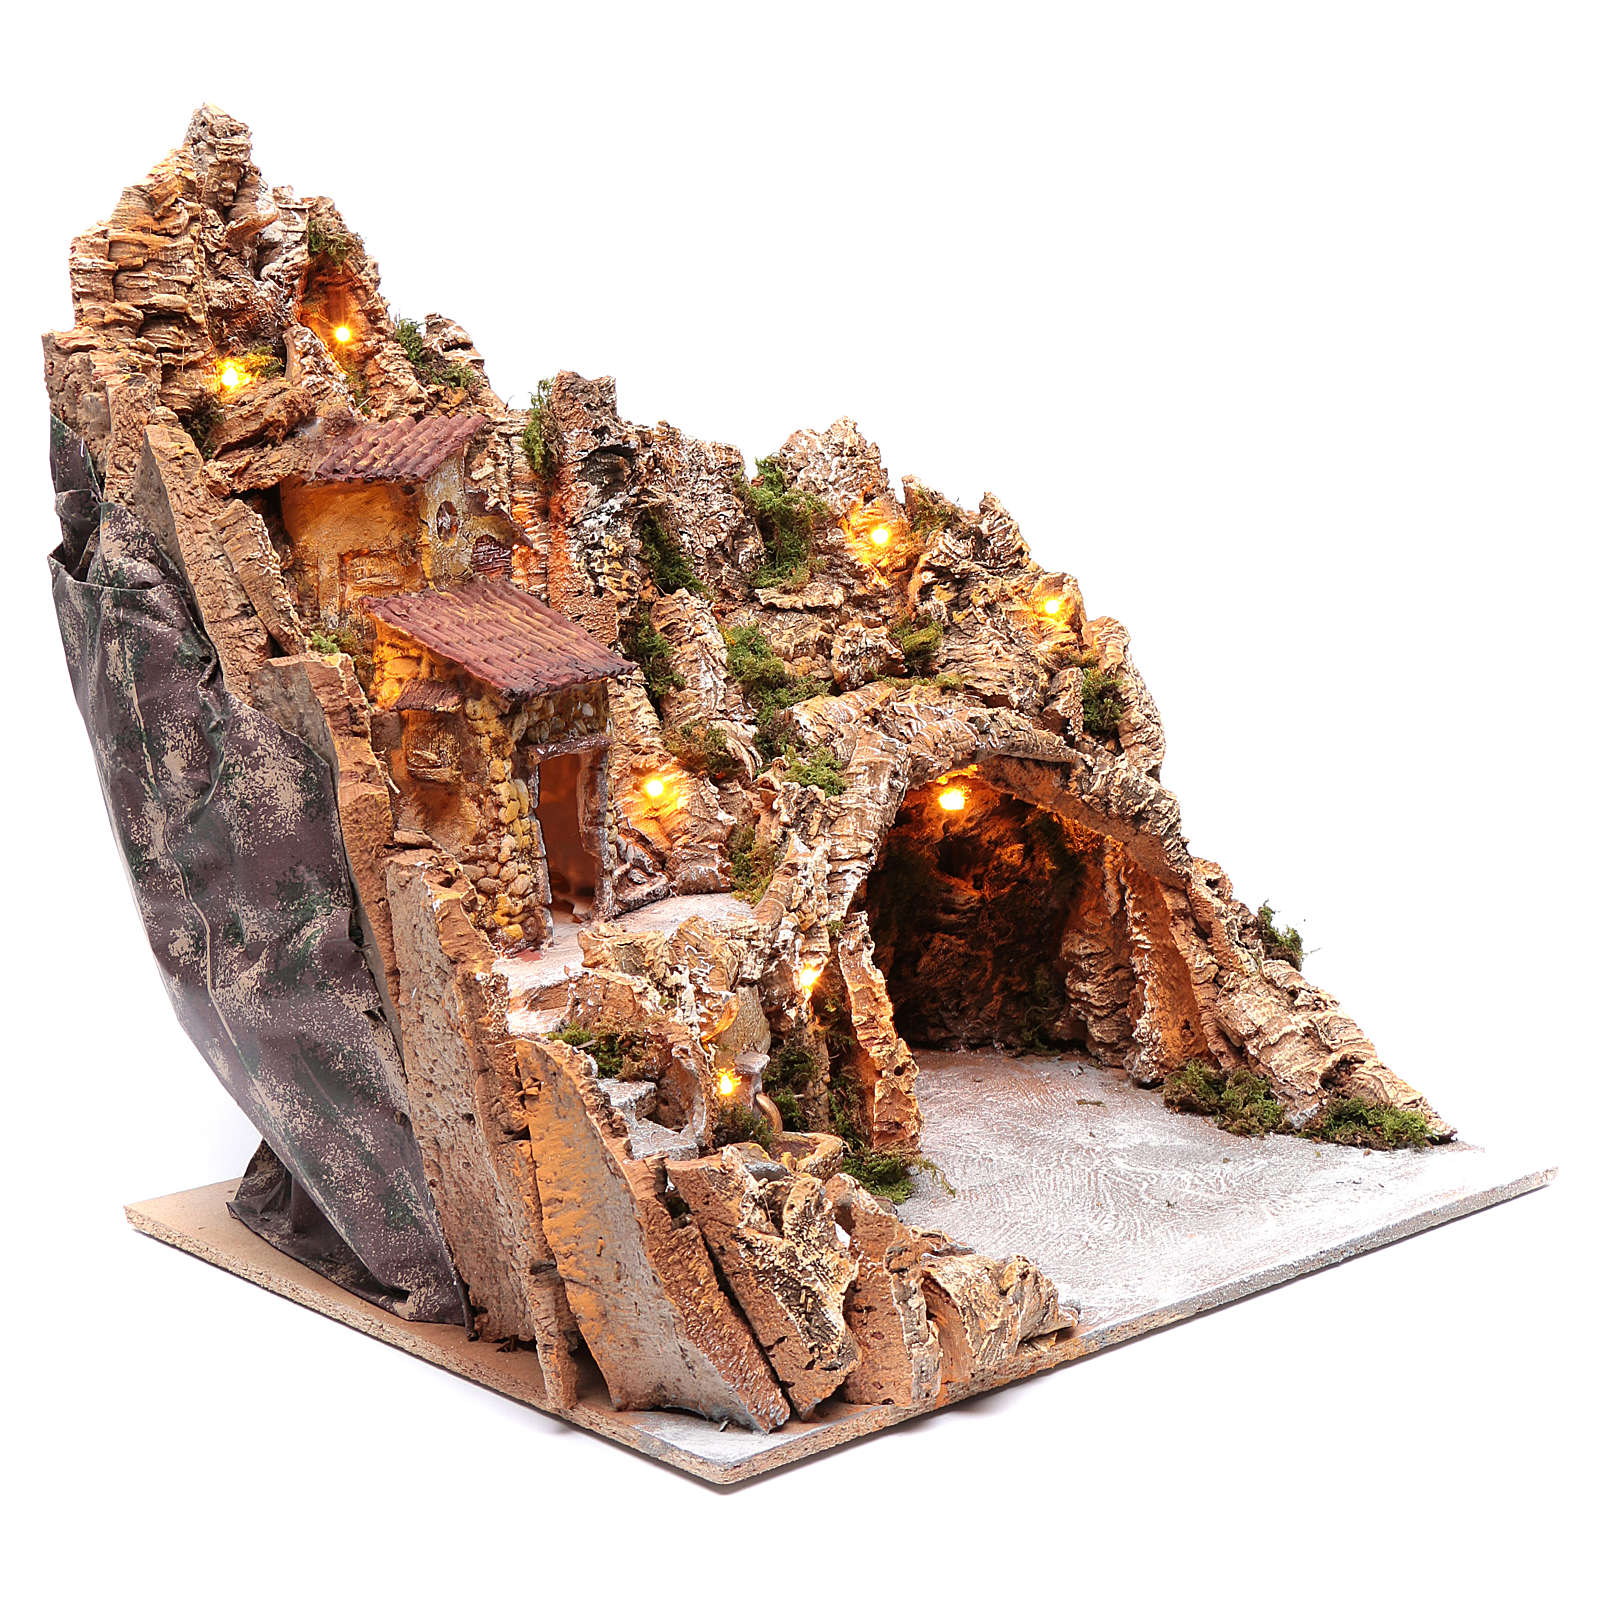 Neapolitan nativity scene setting with hut and fountain 50X40X40 cm 4